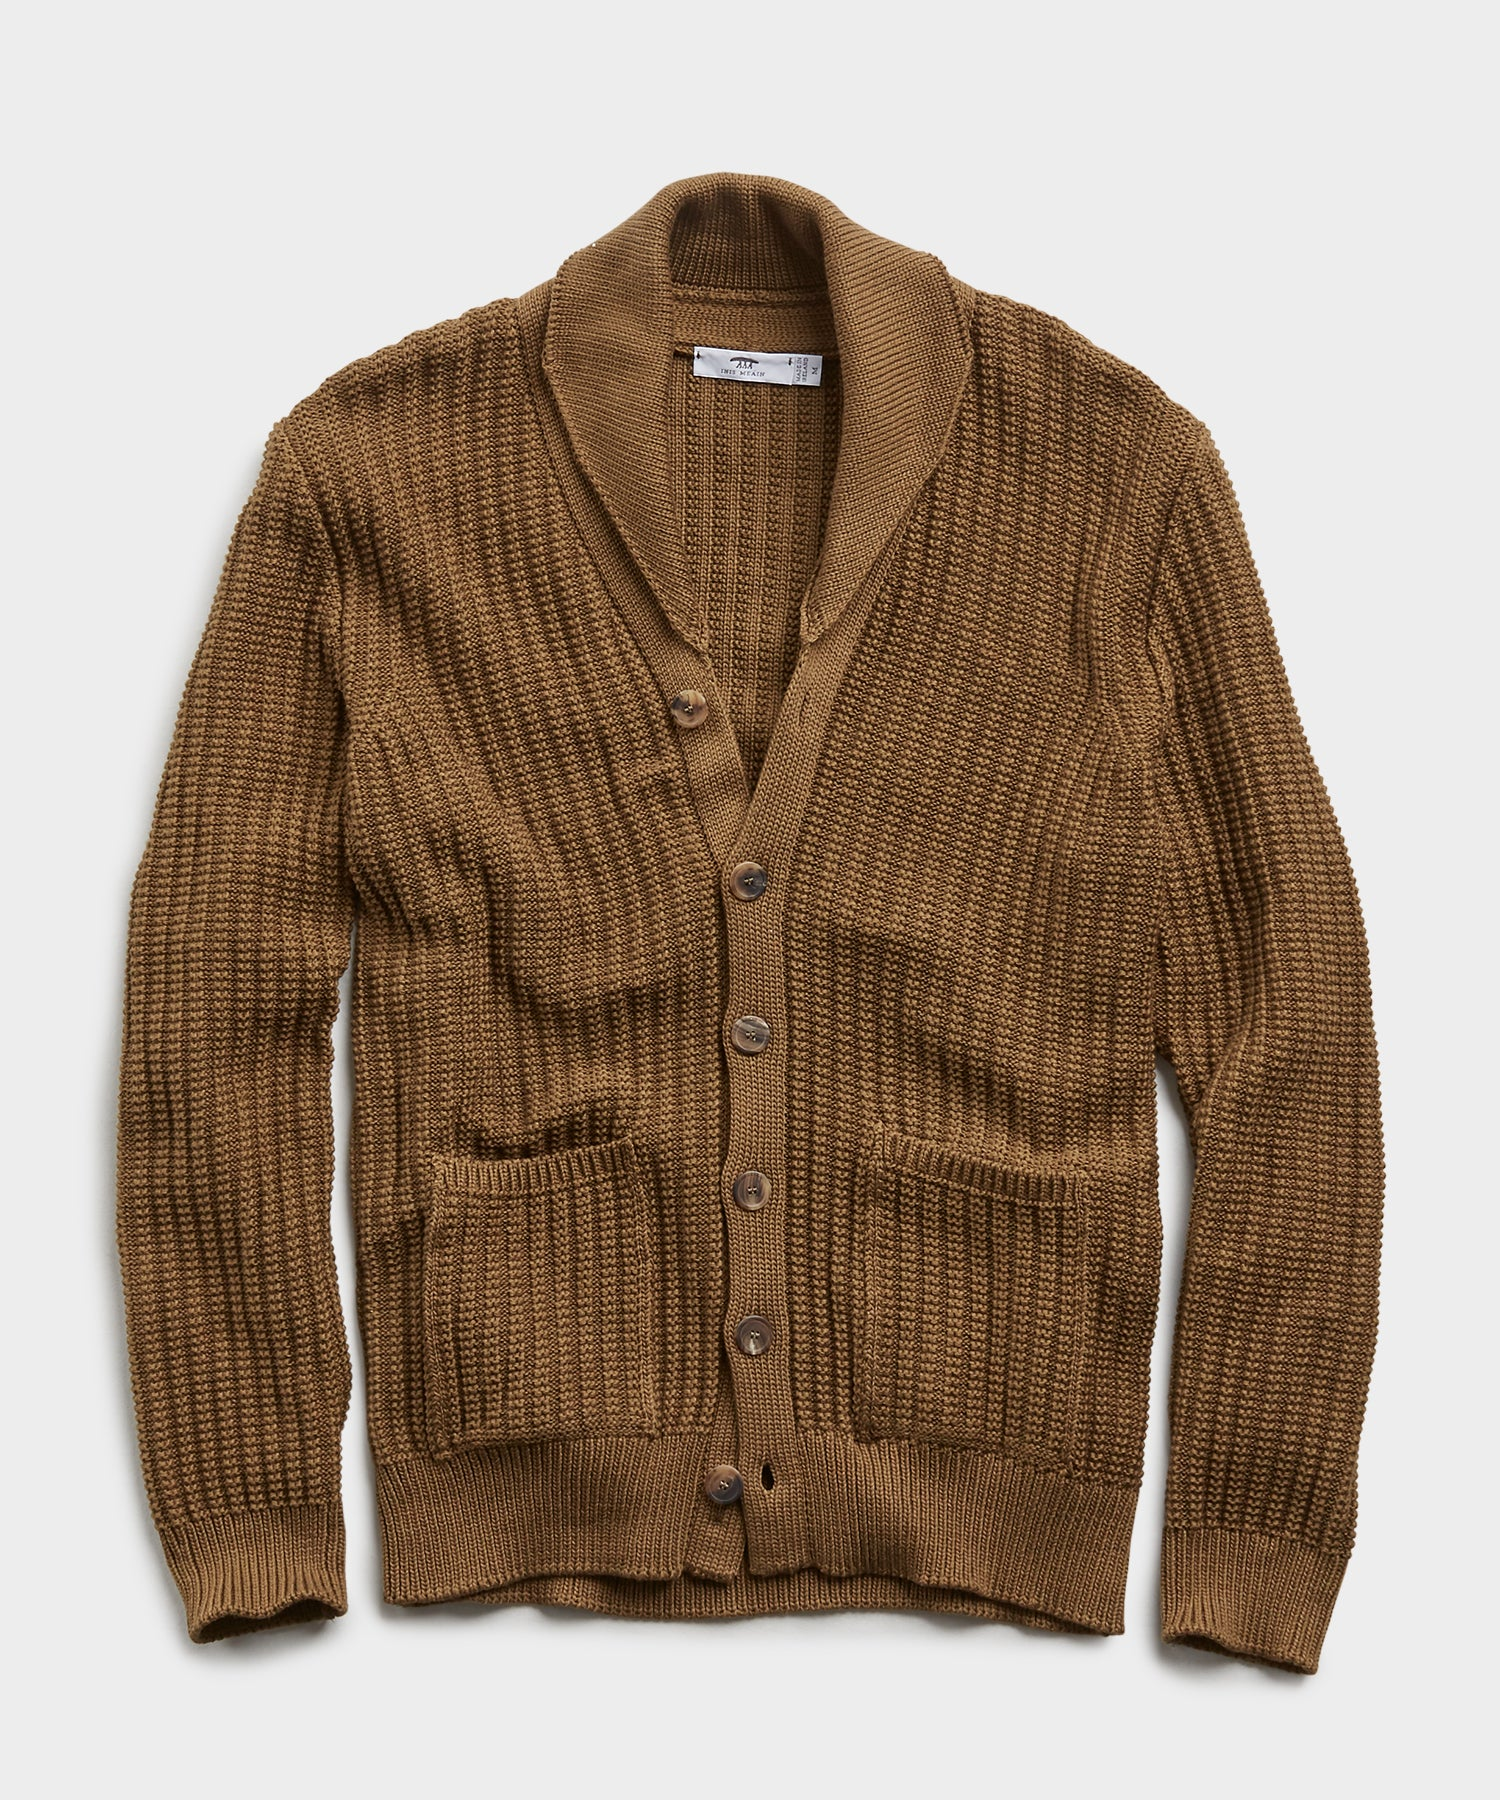 Inis Meain Beach Cardigan in Olive